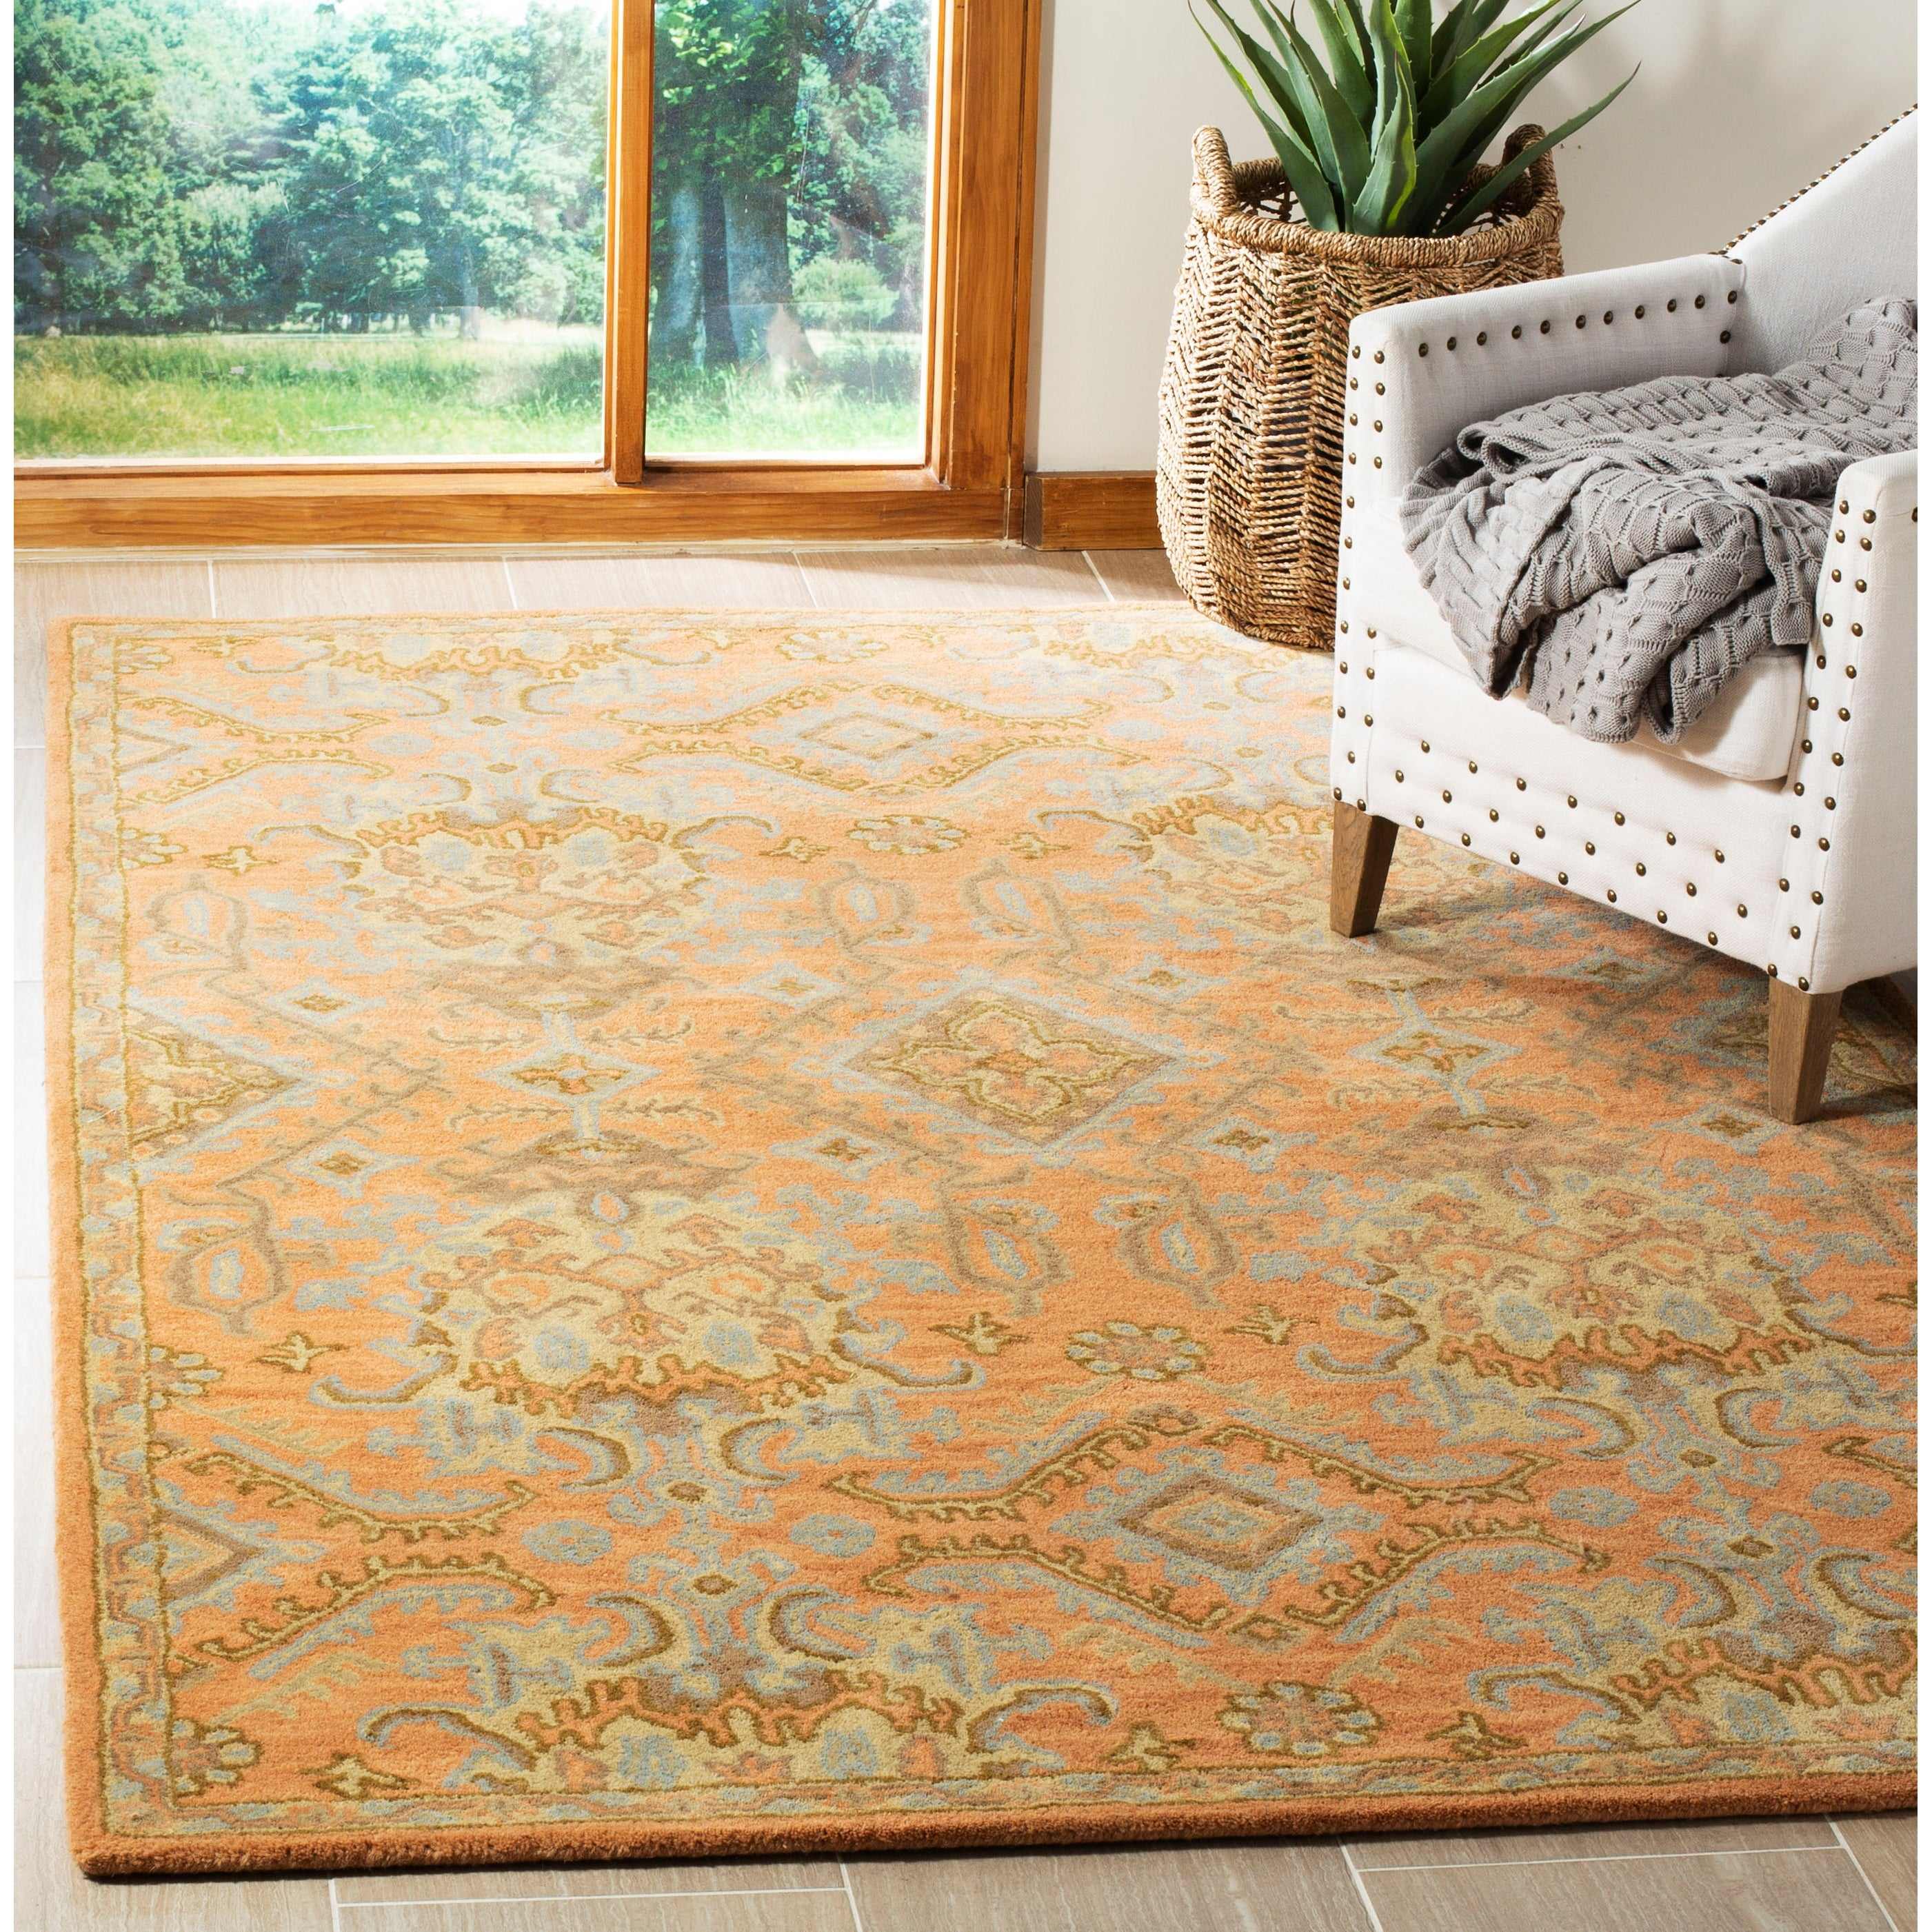 Safavieh Wyndham 4/' x 6/' Hand Tufted Wool Rug in Gray and Taupe